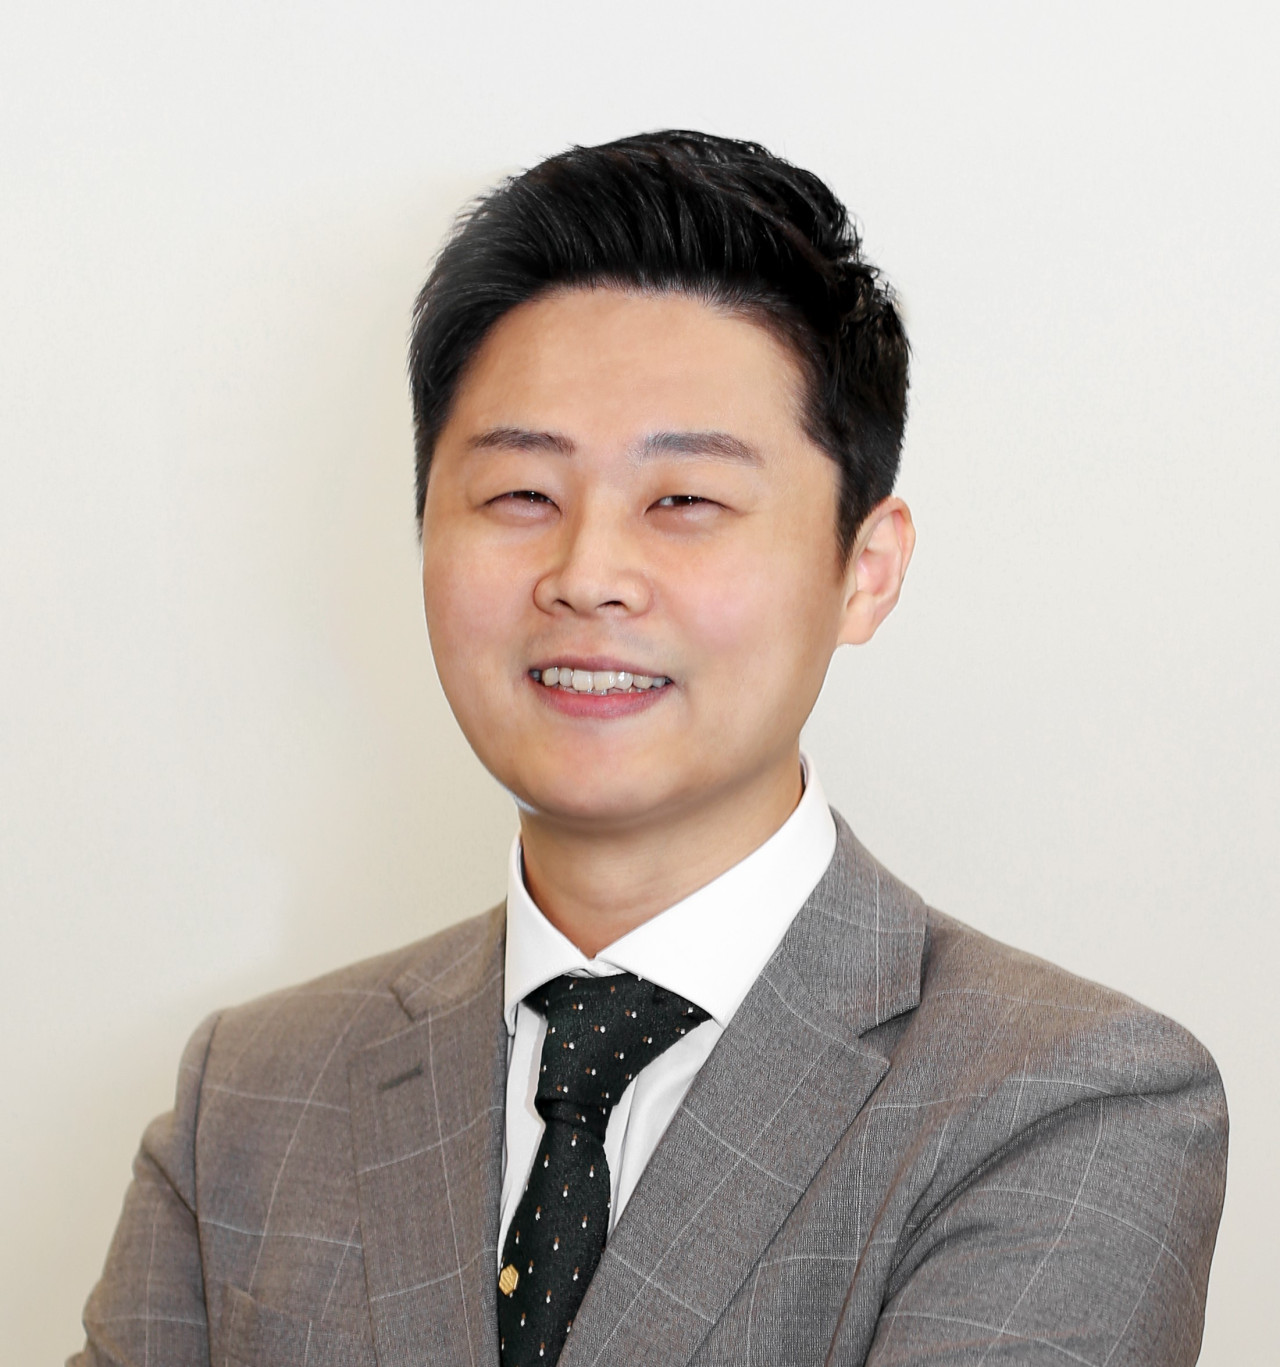 Hwang Sung-yun has been tapped as CEO of E-Land Eats. (E-Land Group)